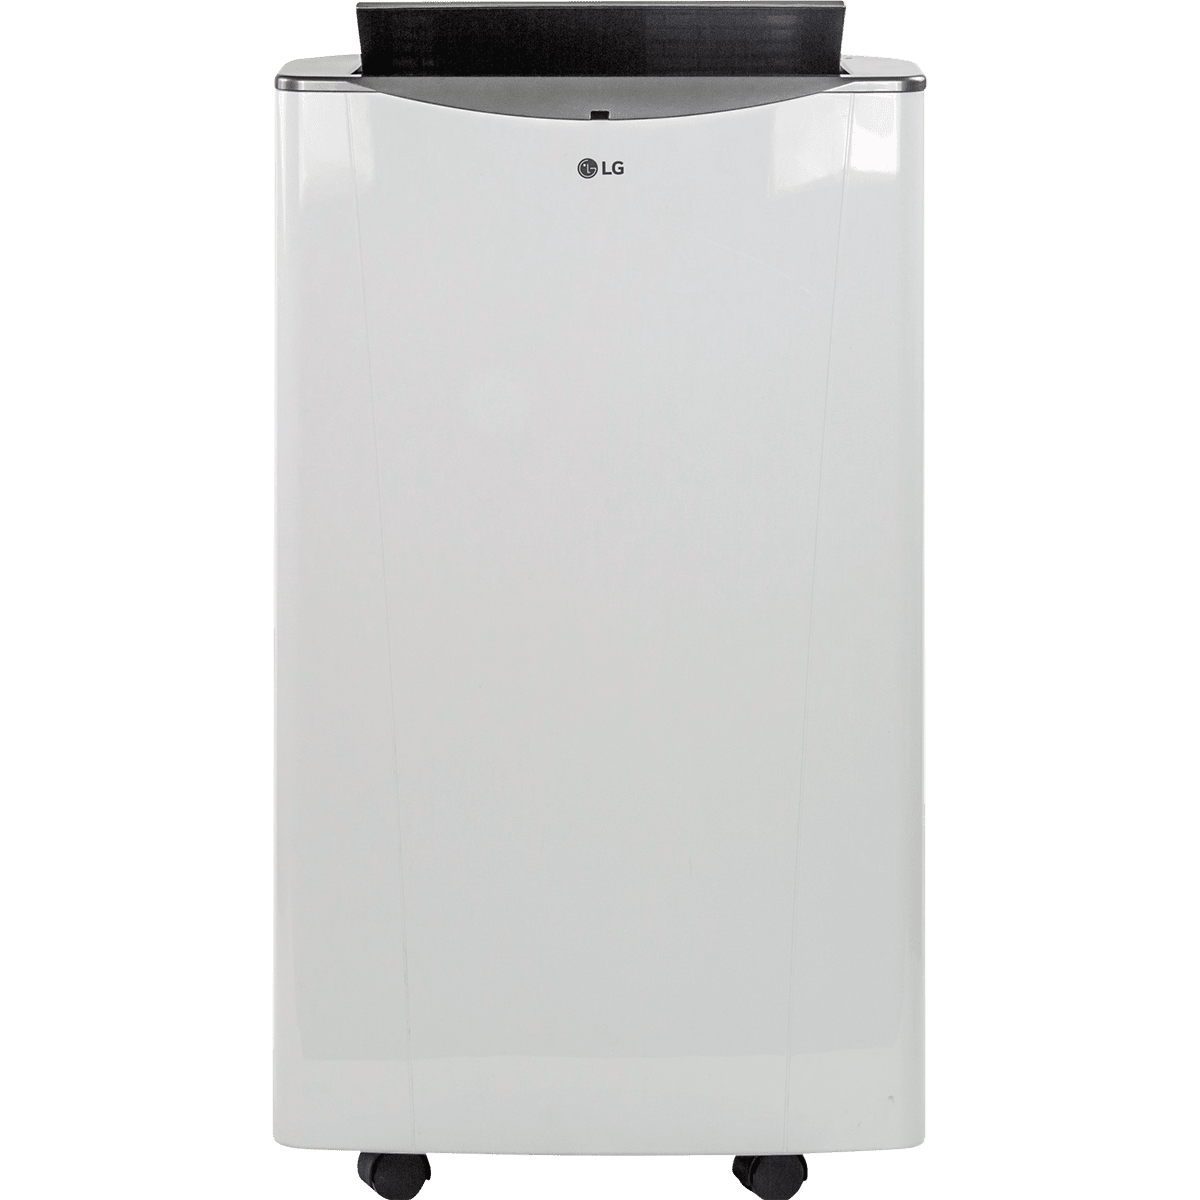 lg 8000 btu portable air conditioner. lg lp1415wxrsm 14,000 btu portable air conditioner with wifi lg 8000 btu